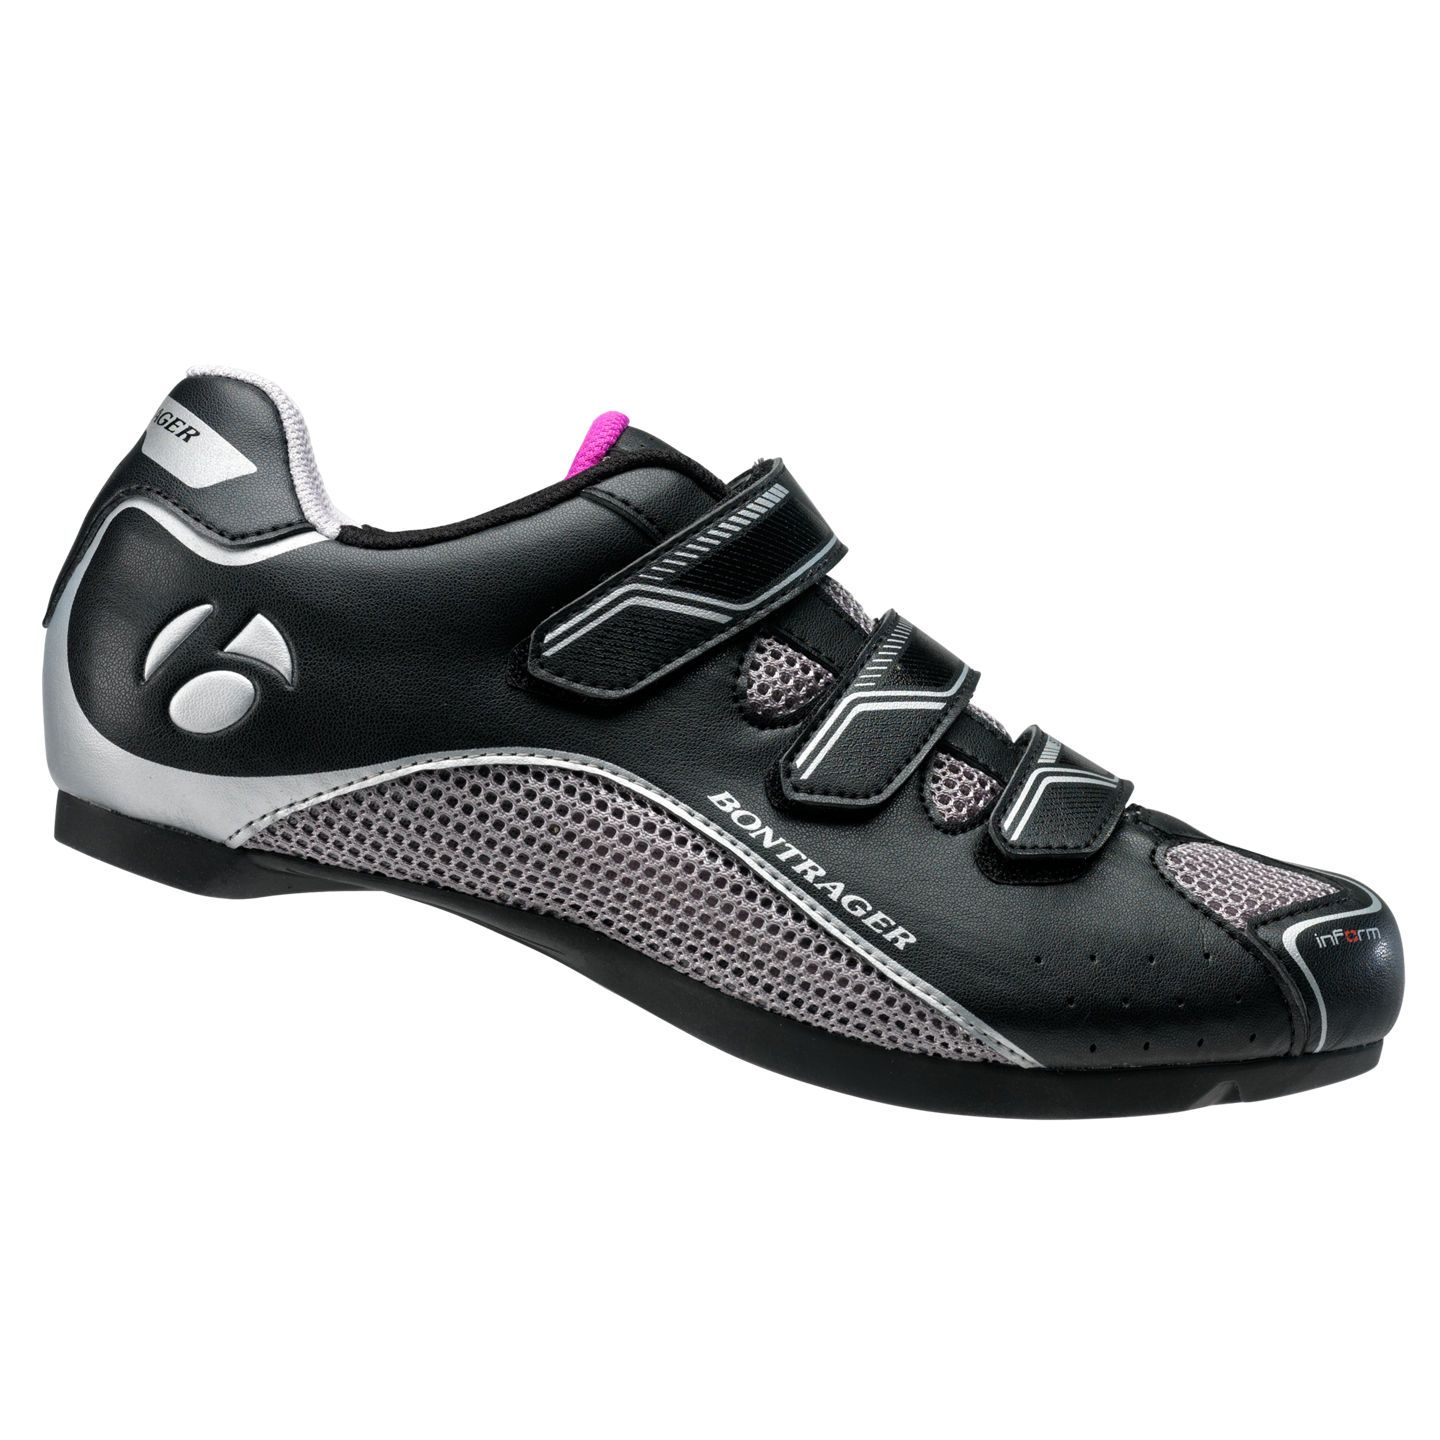 Chaussures Bontrager Solstice WSD Dame - 37